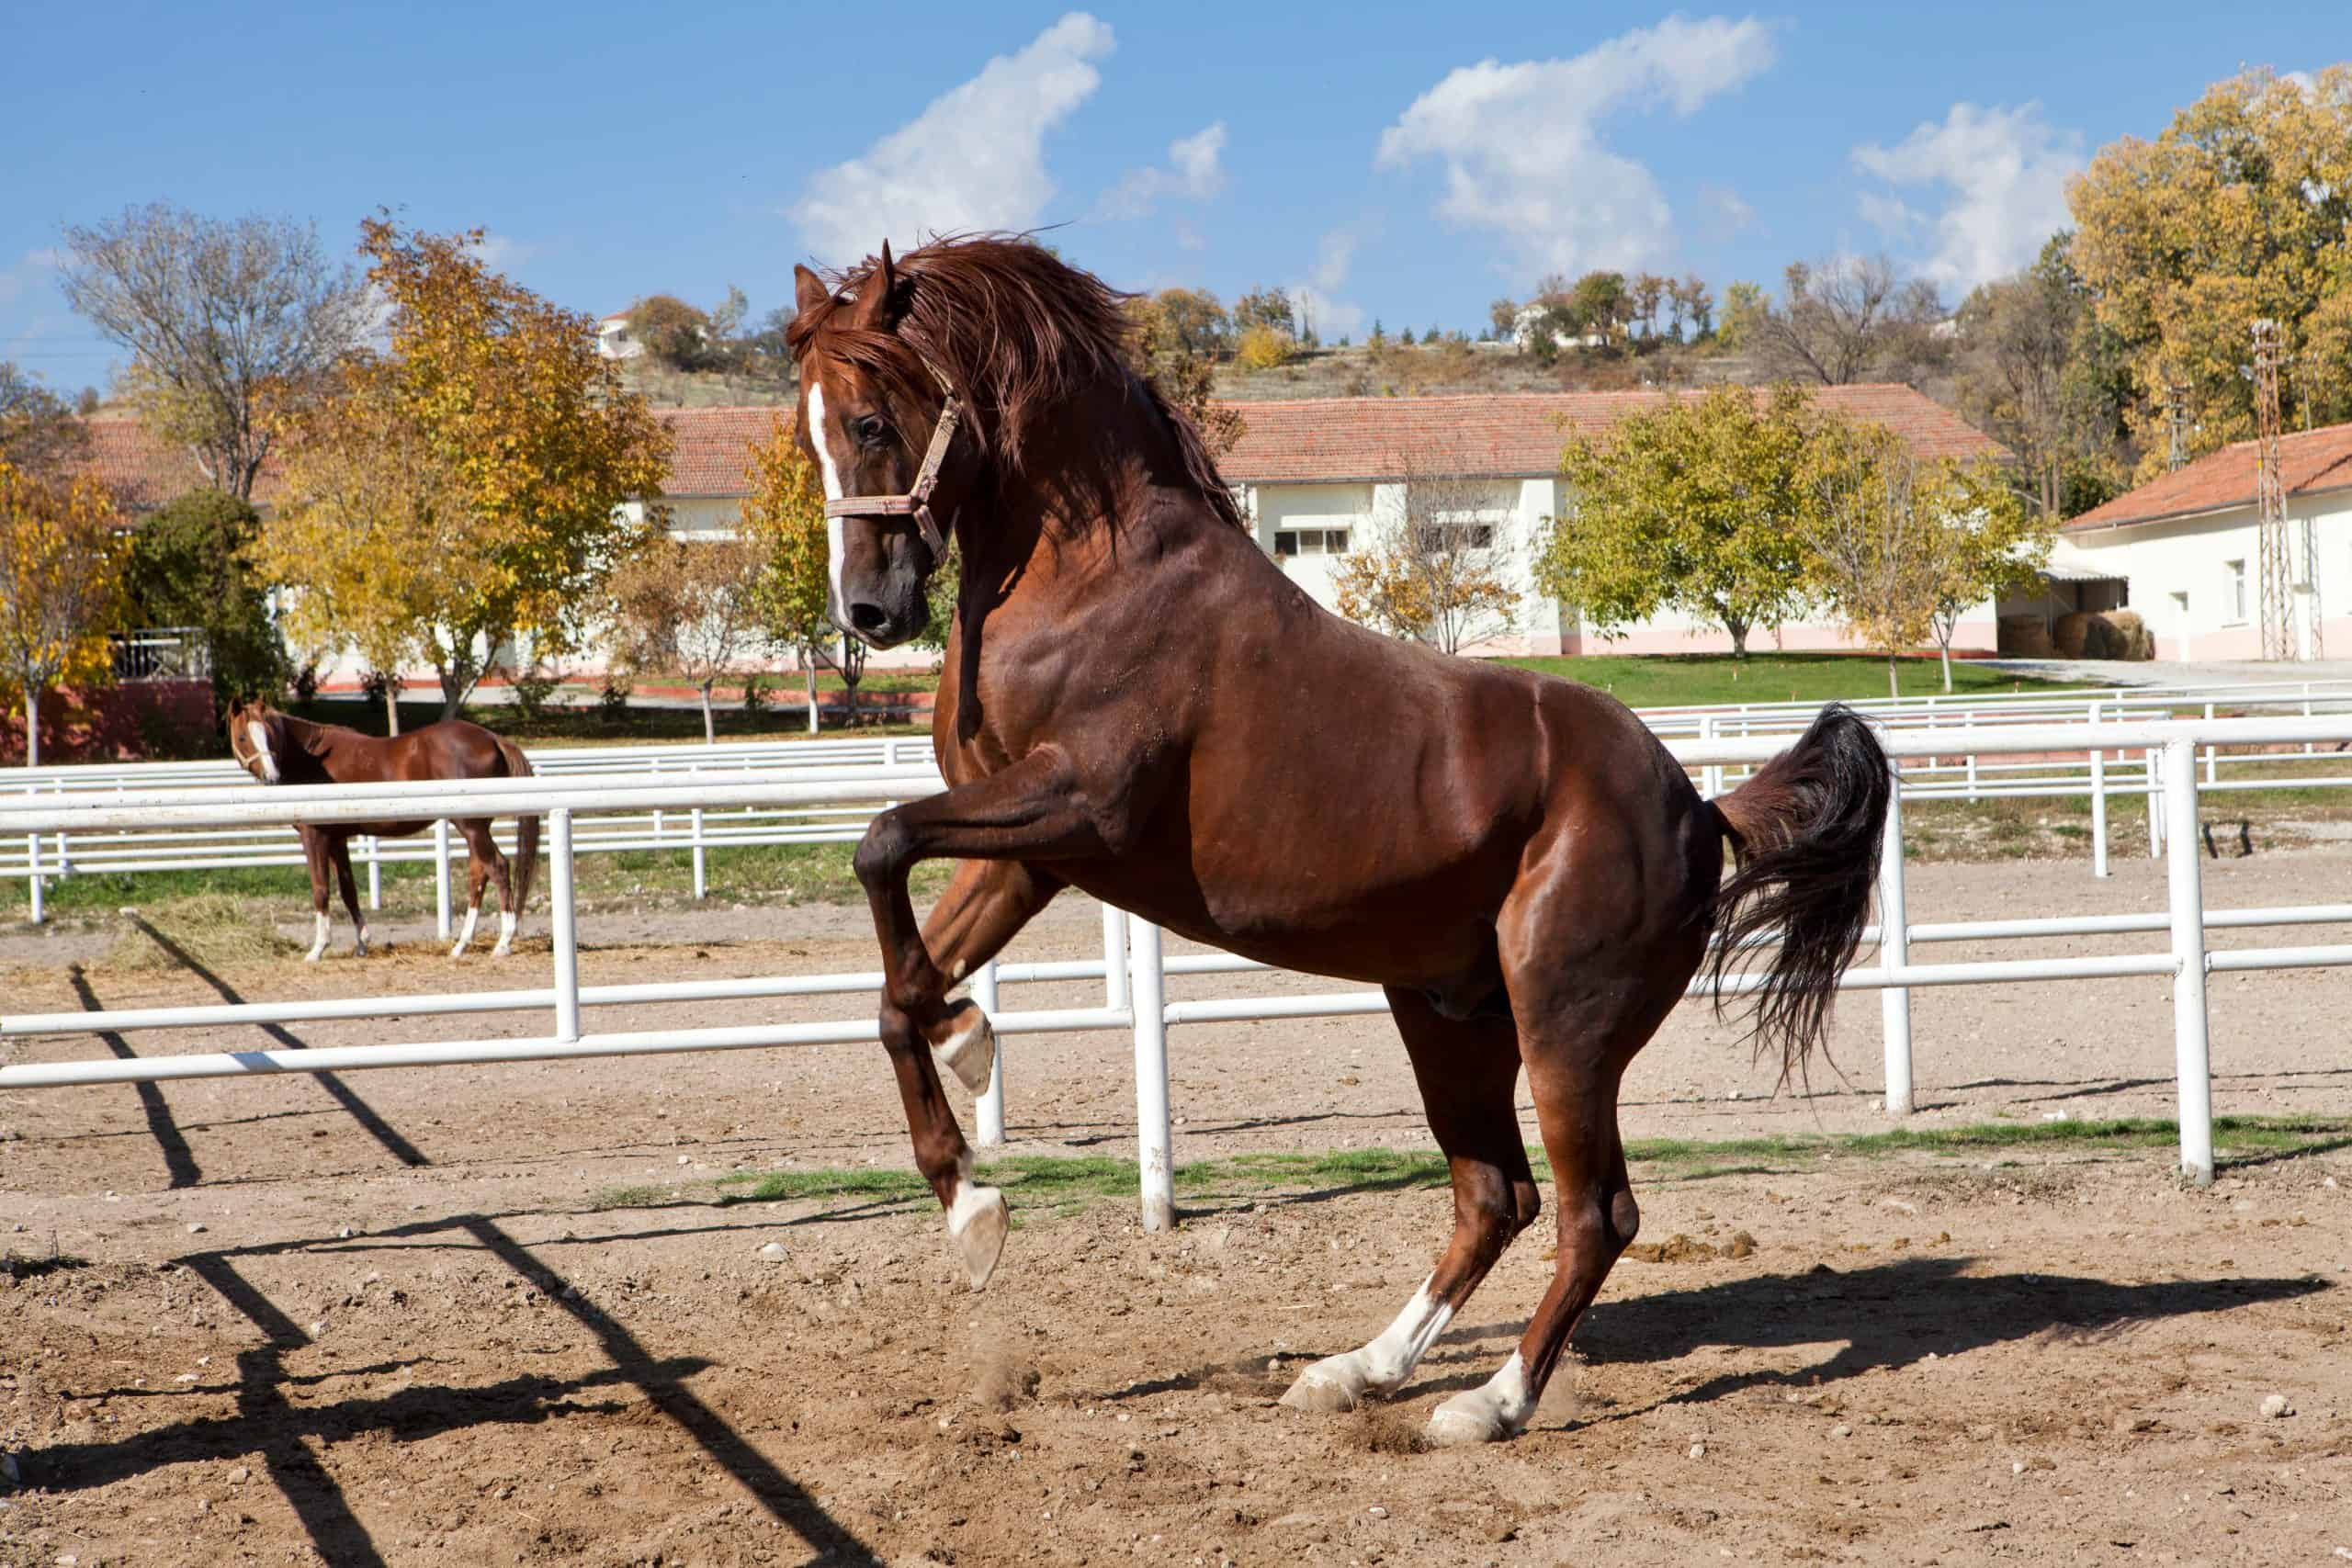 Horse rearing up